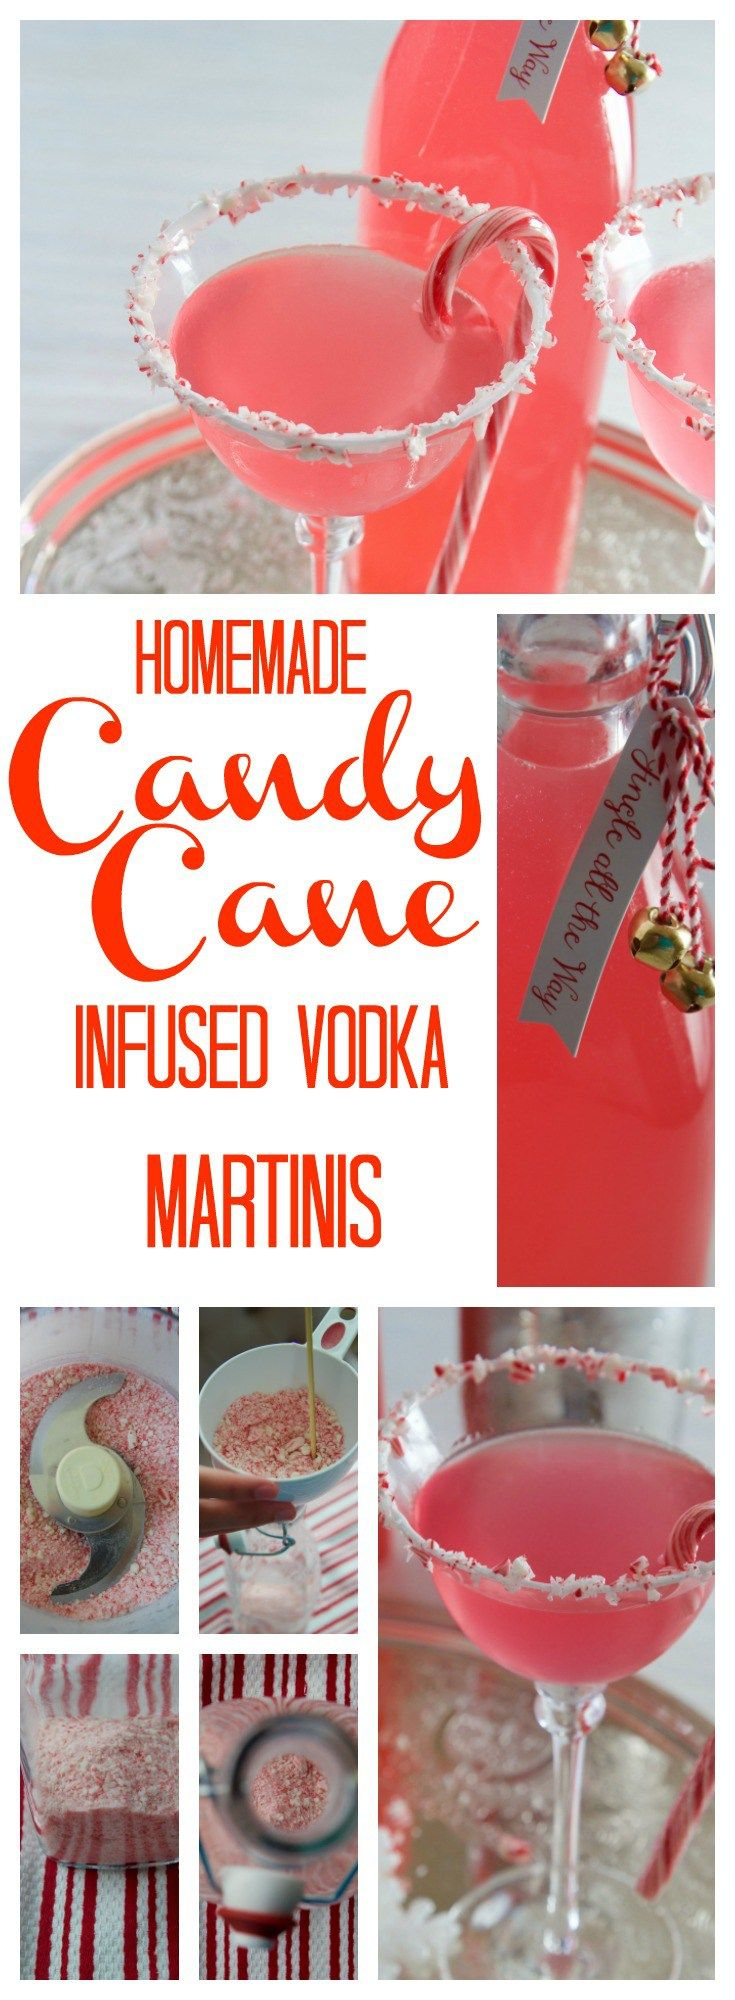 Serve Candy Cane Martinis made with homemade Peppermint Infused Vodka for the holidays! Or give Peppermint Infused Vodka as a festive hostess gift! #martini #christmasrecipe #holidayrecipes